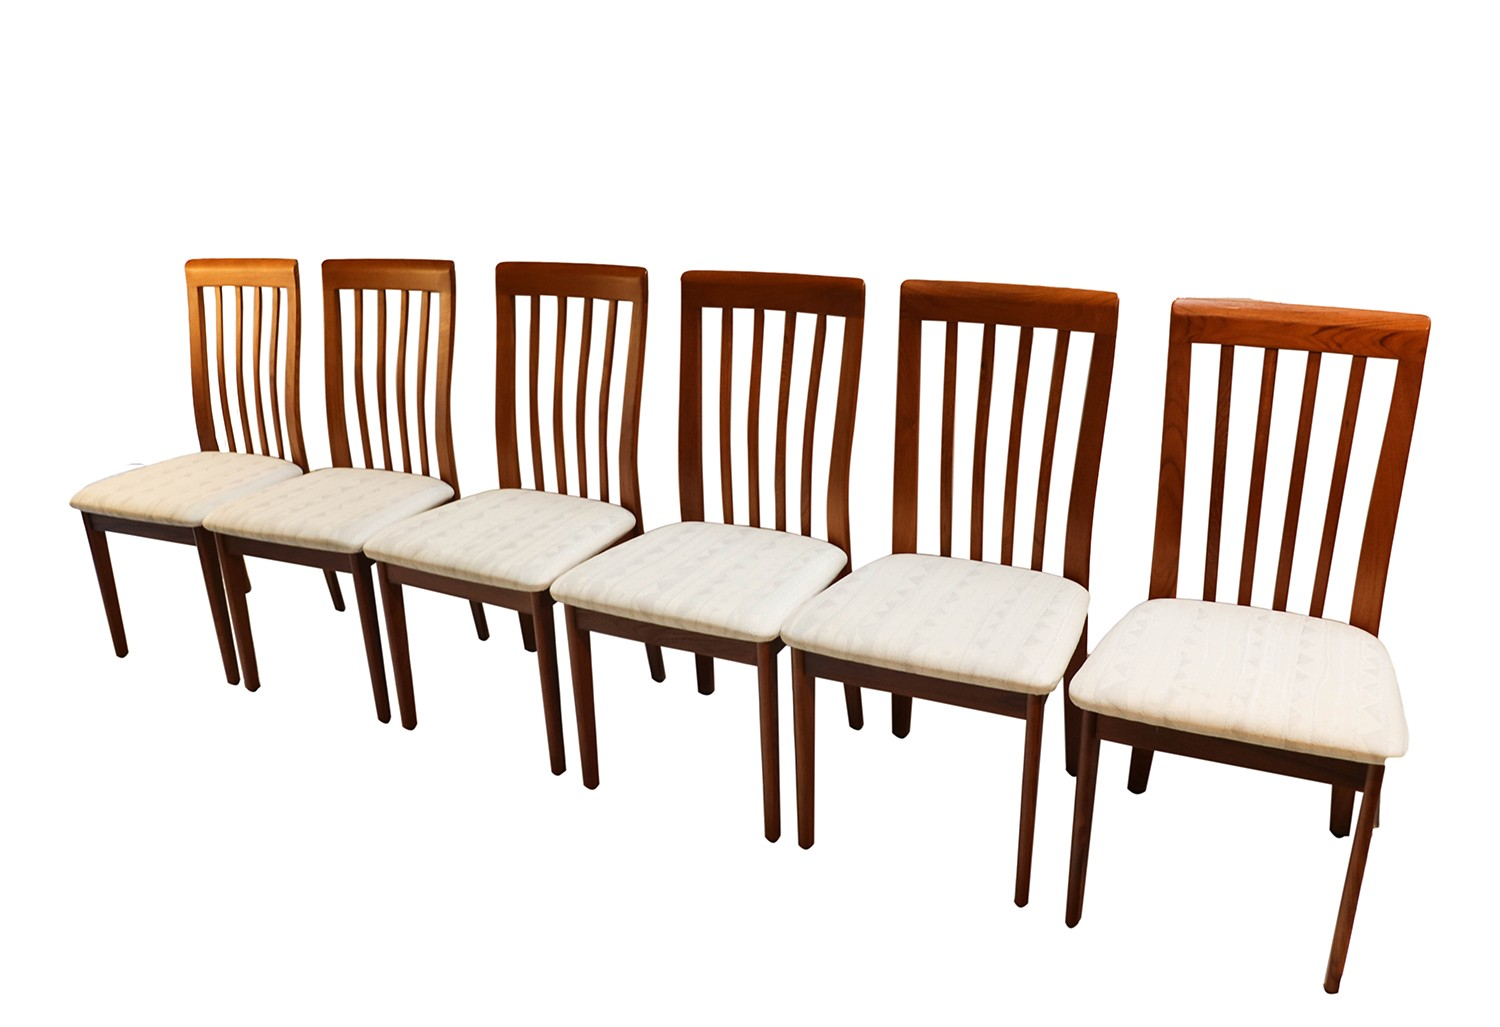 Dining Chairs Set Of 6 Danish Modern Teak Dining Chairs Set Of 6